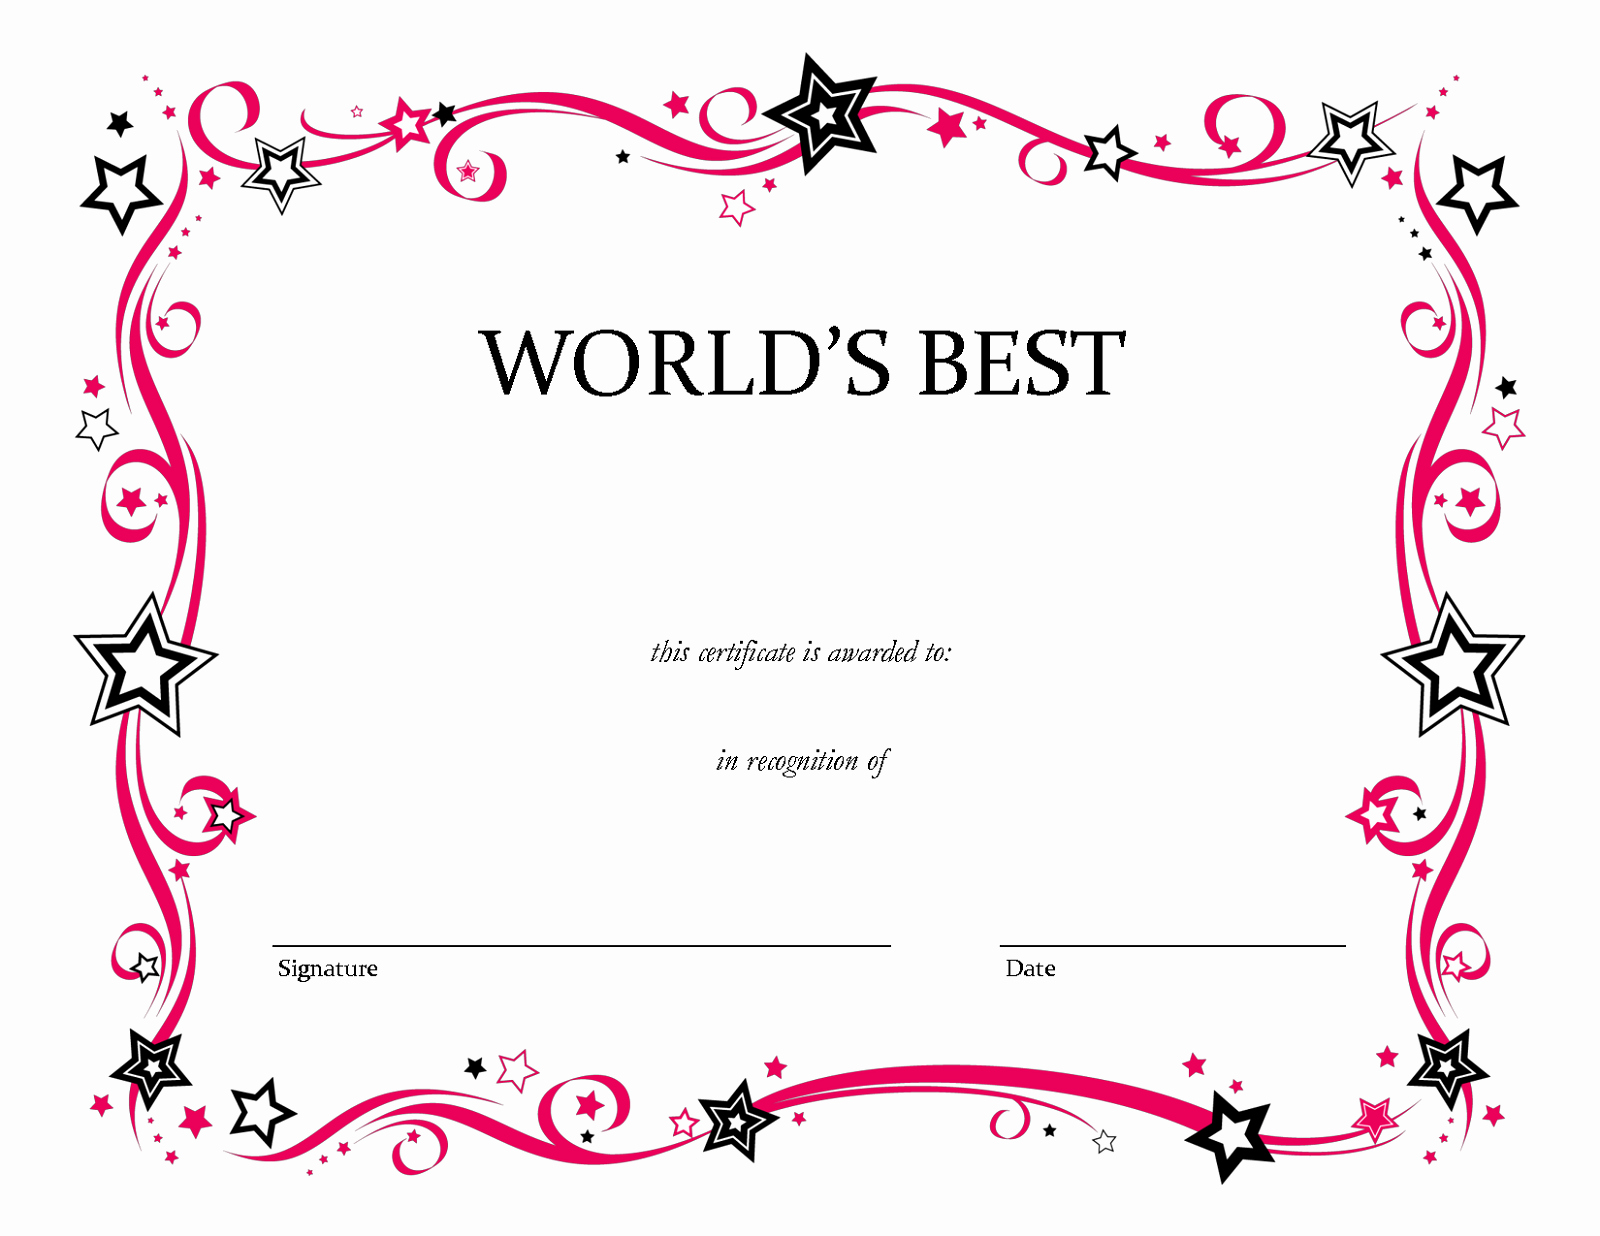 Award Certificate Template Free New Blank Certificate Templates to Print